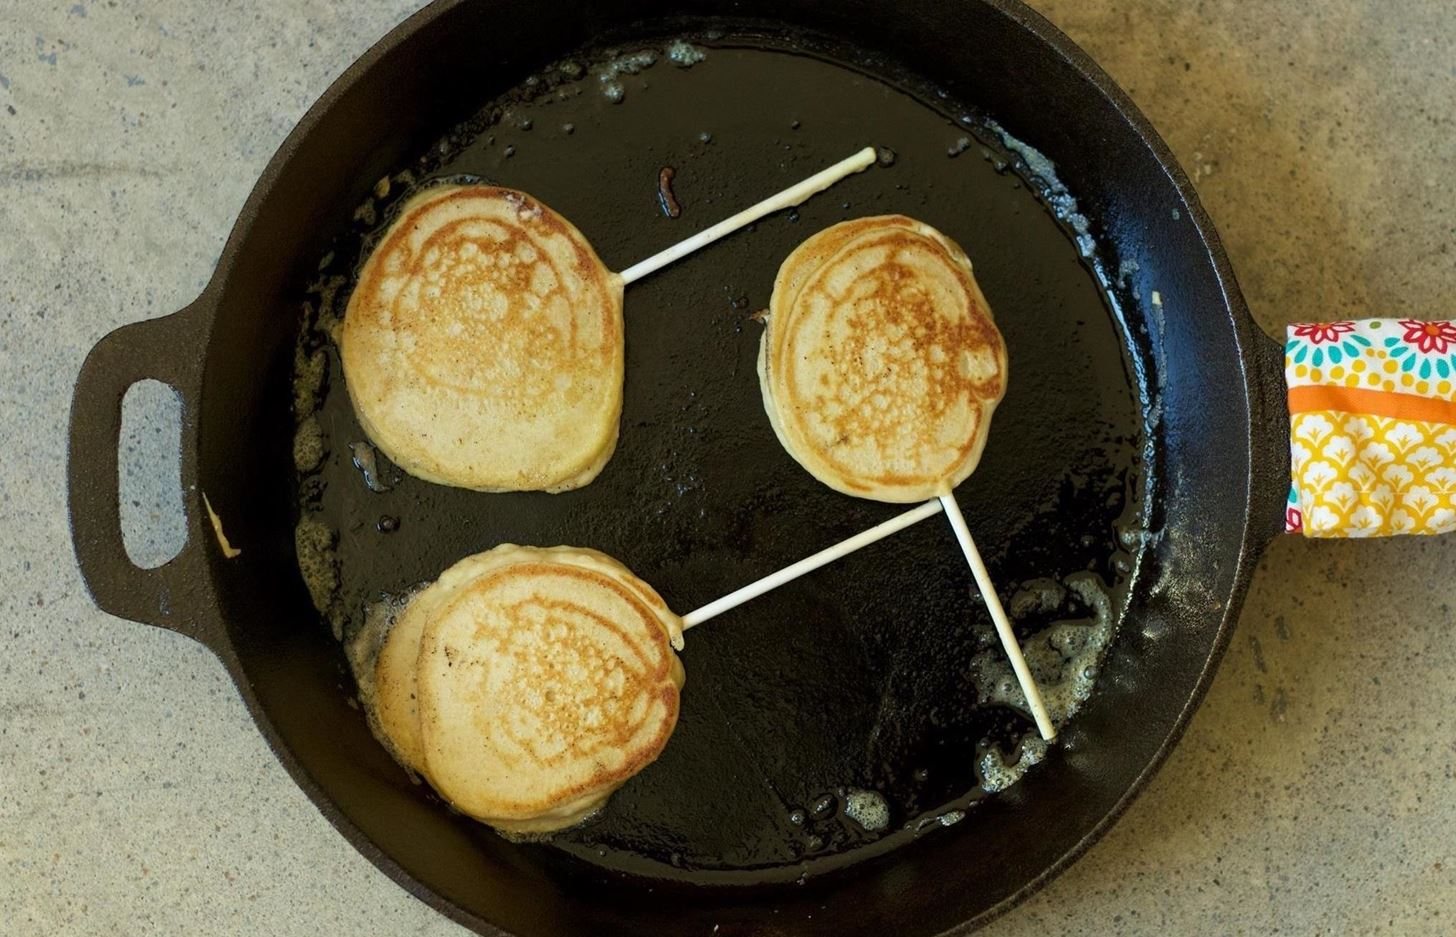 These pancake lollipops will make you feel like a kid again food youll be able to get lots of practice in with a big batch and so long as they remain on the stick its fine if they arent all perfectly circular ccuart Choice Image